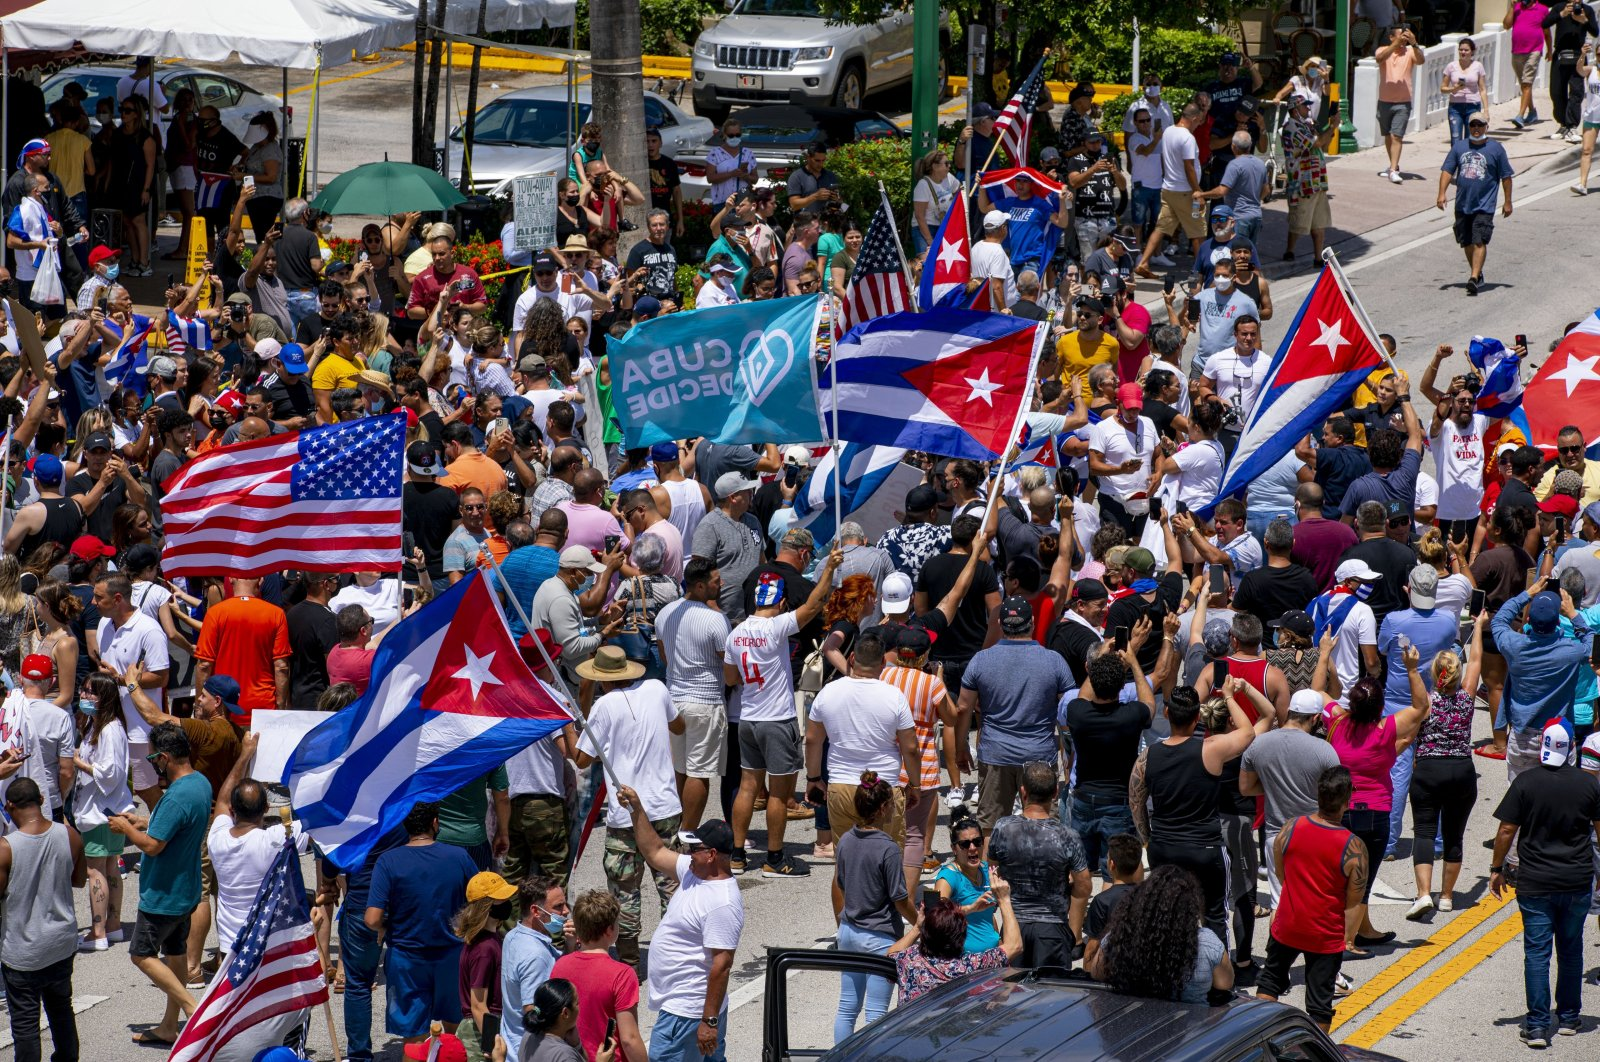 People march in the streets and wave Cuban flags during a protest in solidarity with thousands of Cubans who took to the streets in various locations in Cuba, in one of the largest protests to take place on the island, at Versailles Cuban restaurant off 8th Street in the Little Havana neighborhood of Miami, U.S., July 11, 2021. (AP Photo)